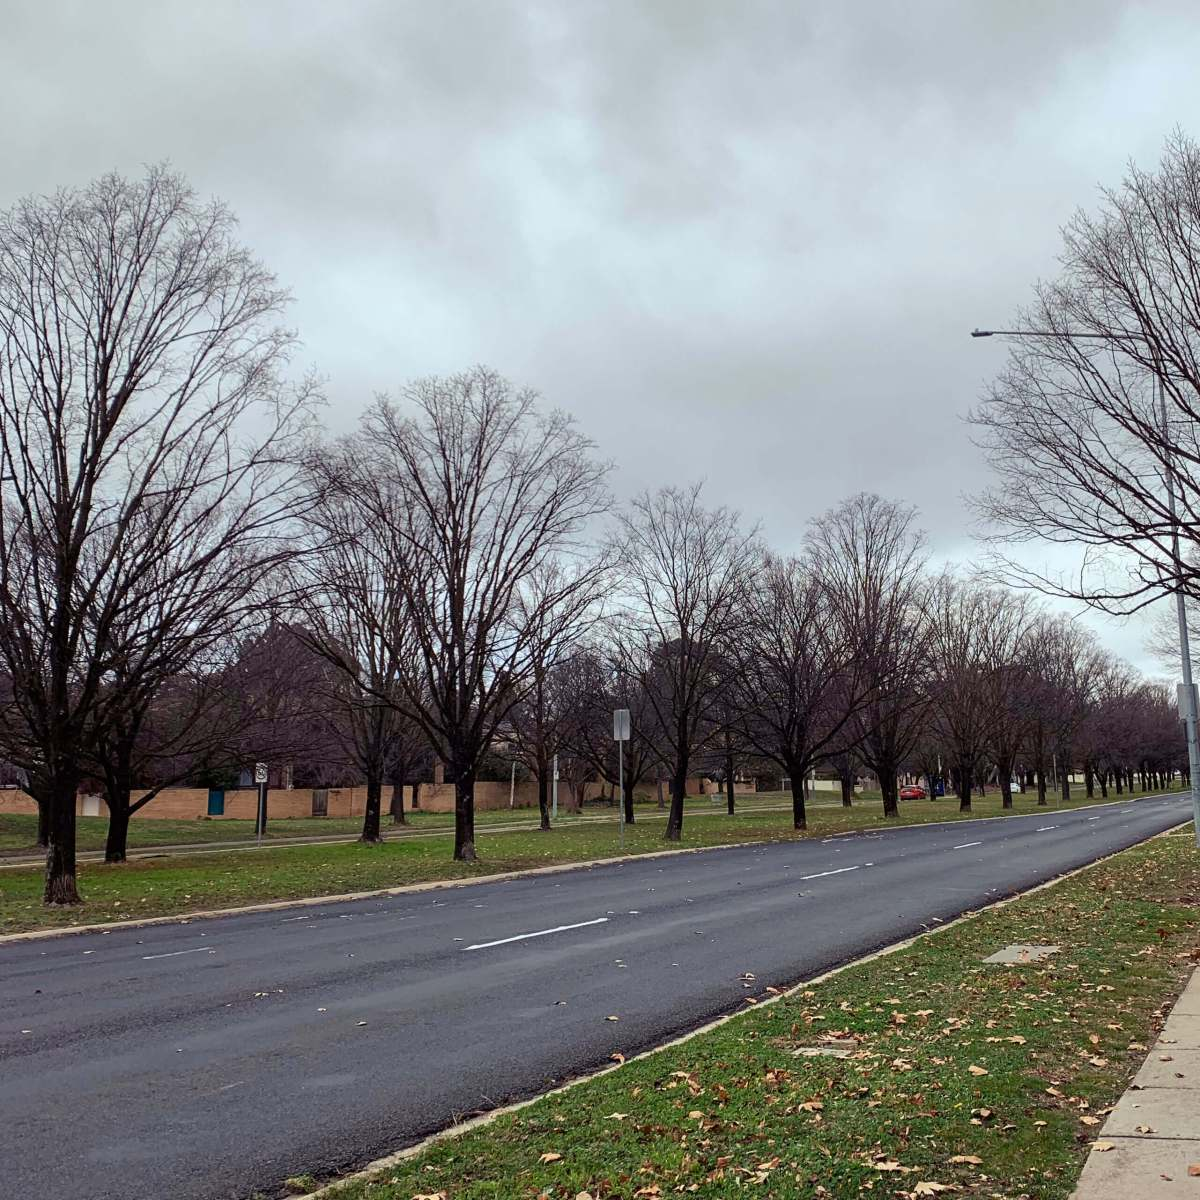 A windy, winter day in Canberra